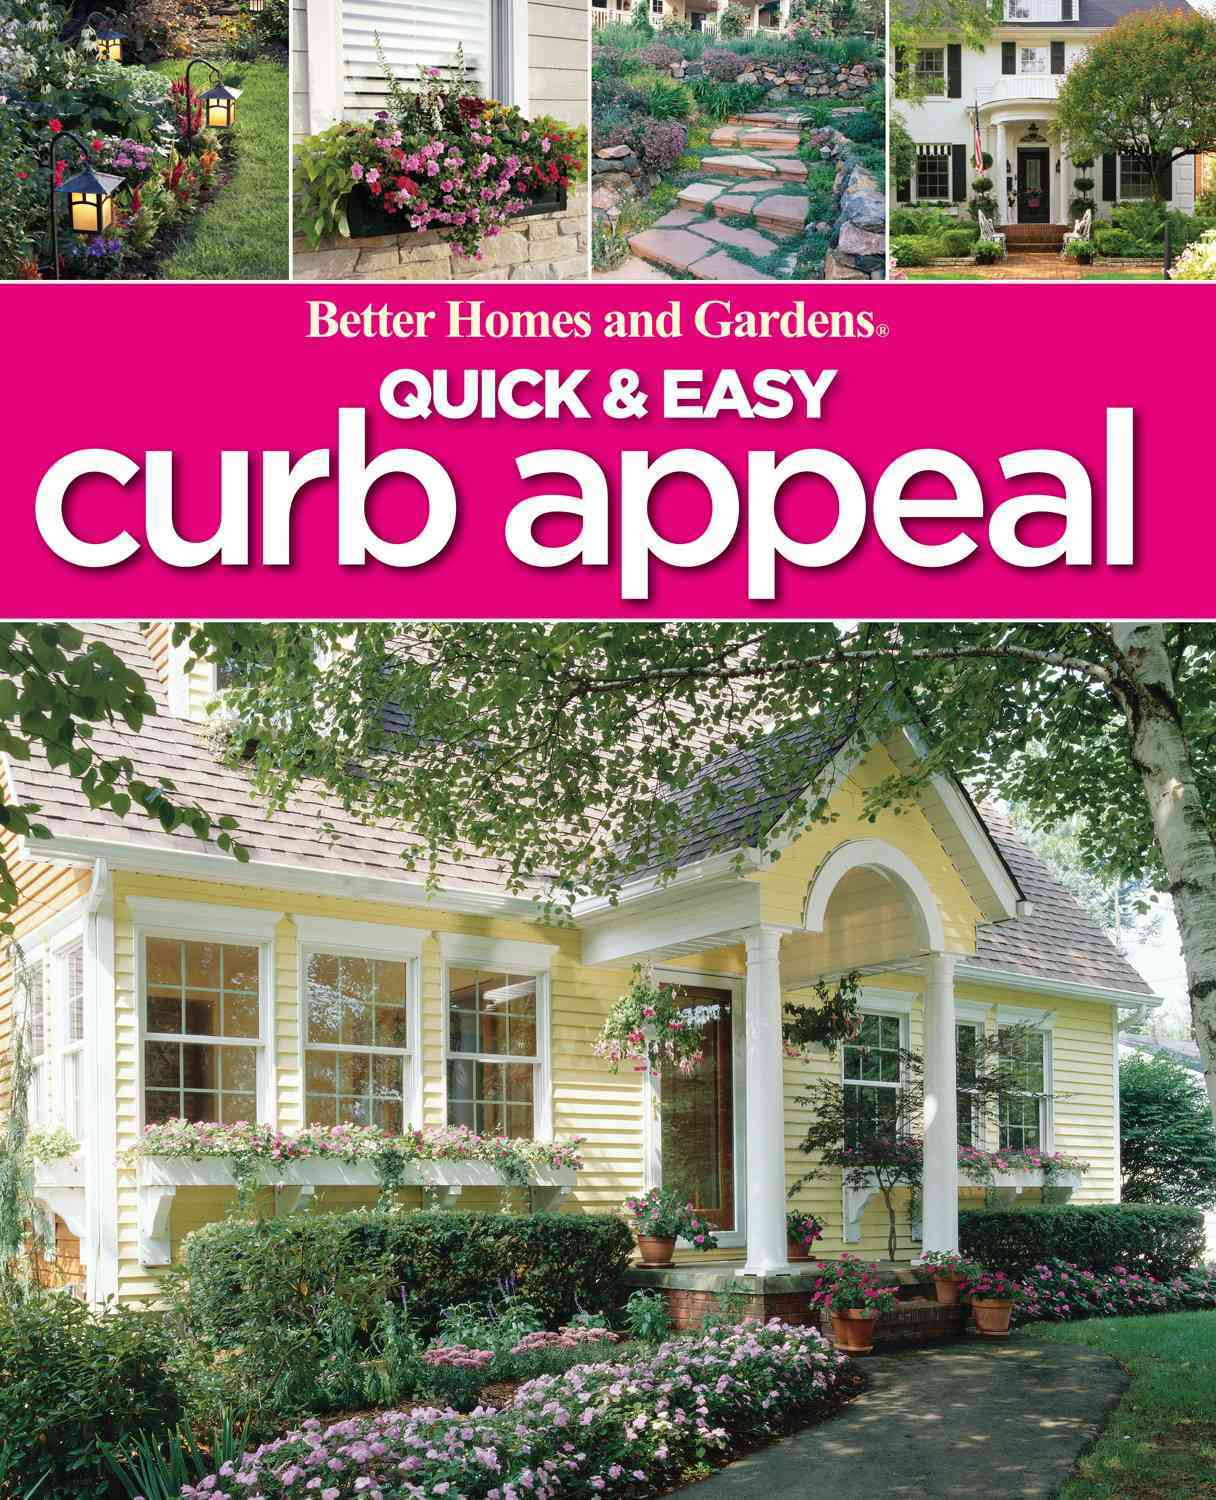 Better Homes & Gardens Quick & Easy Curb Appeal By Better Homes and Gardens Books